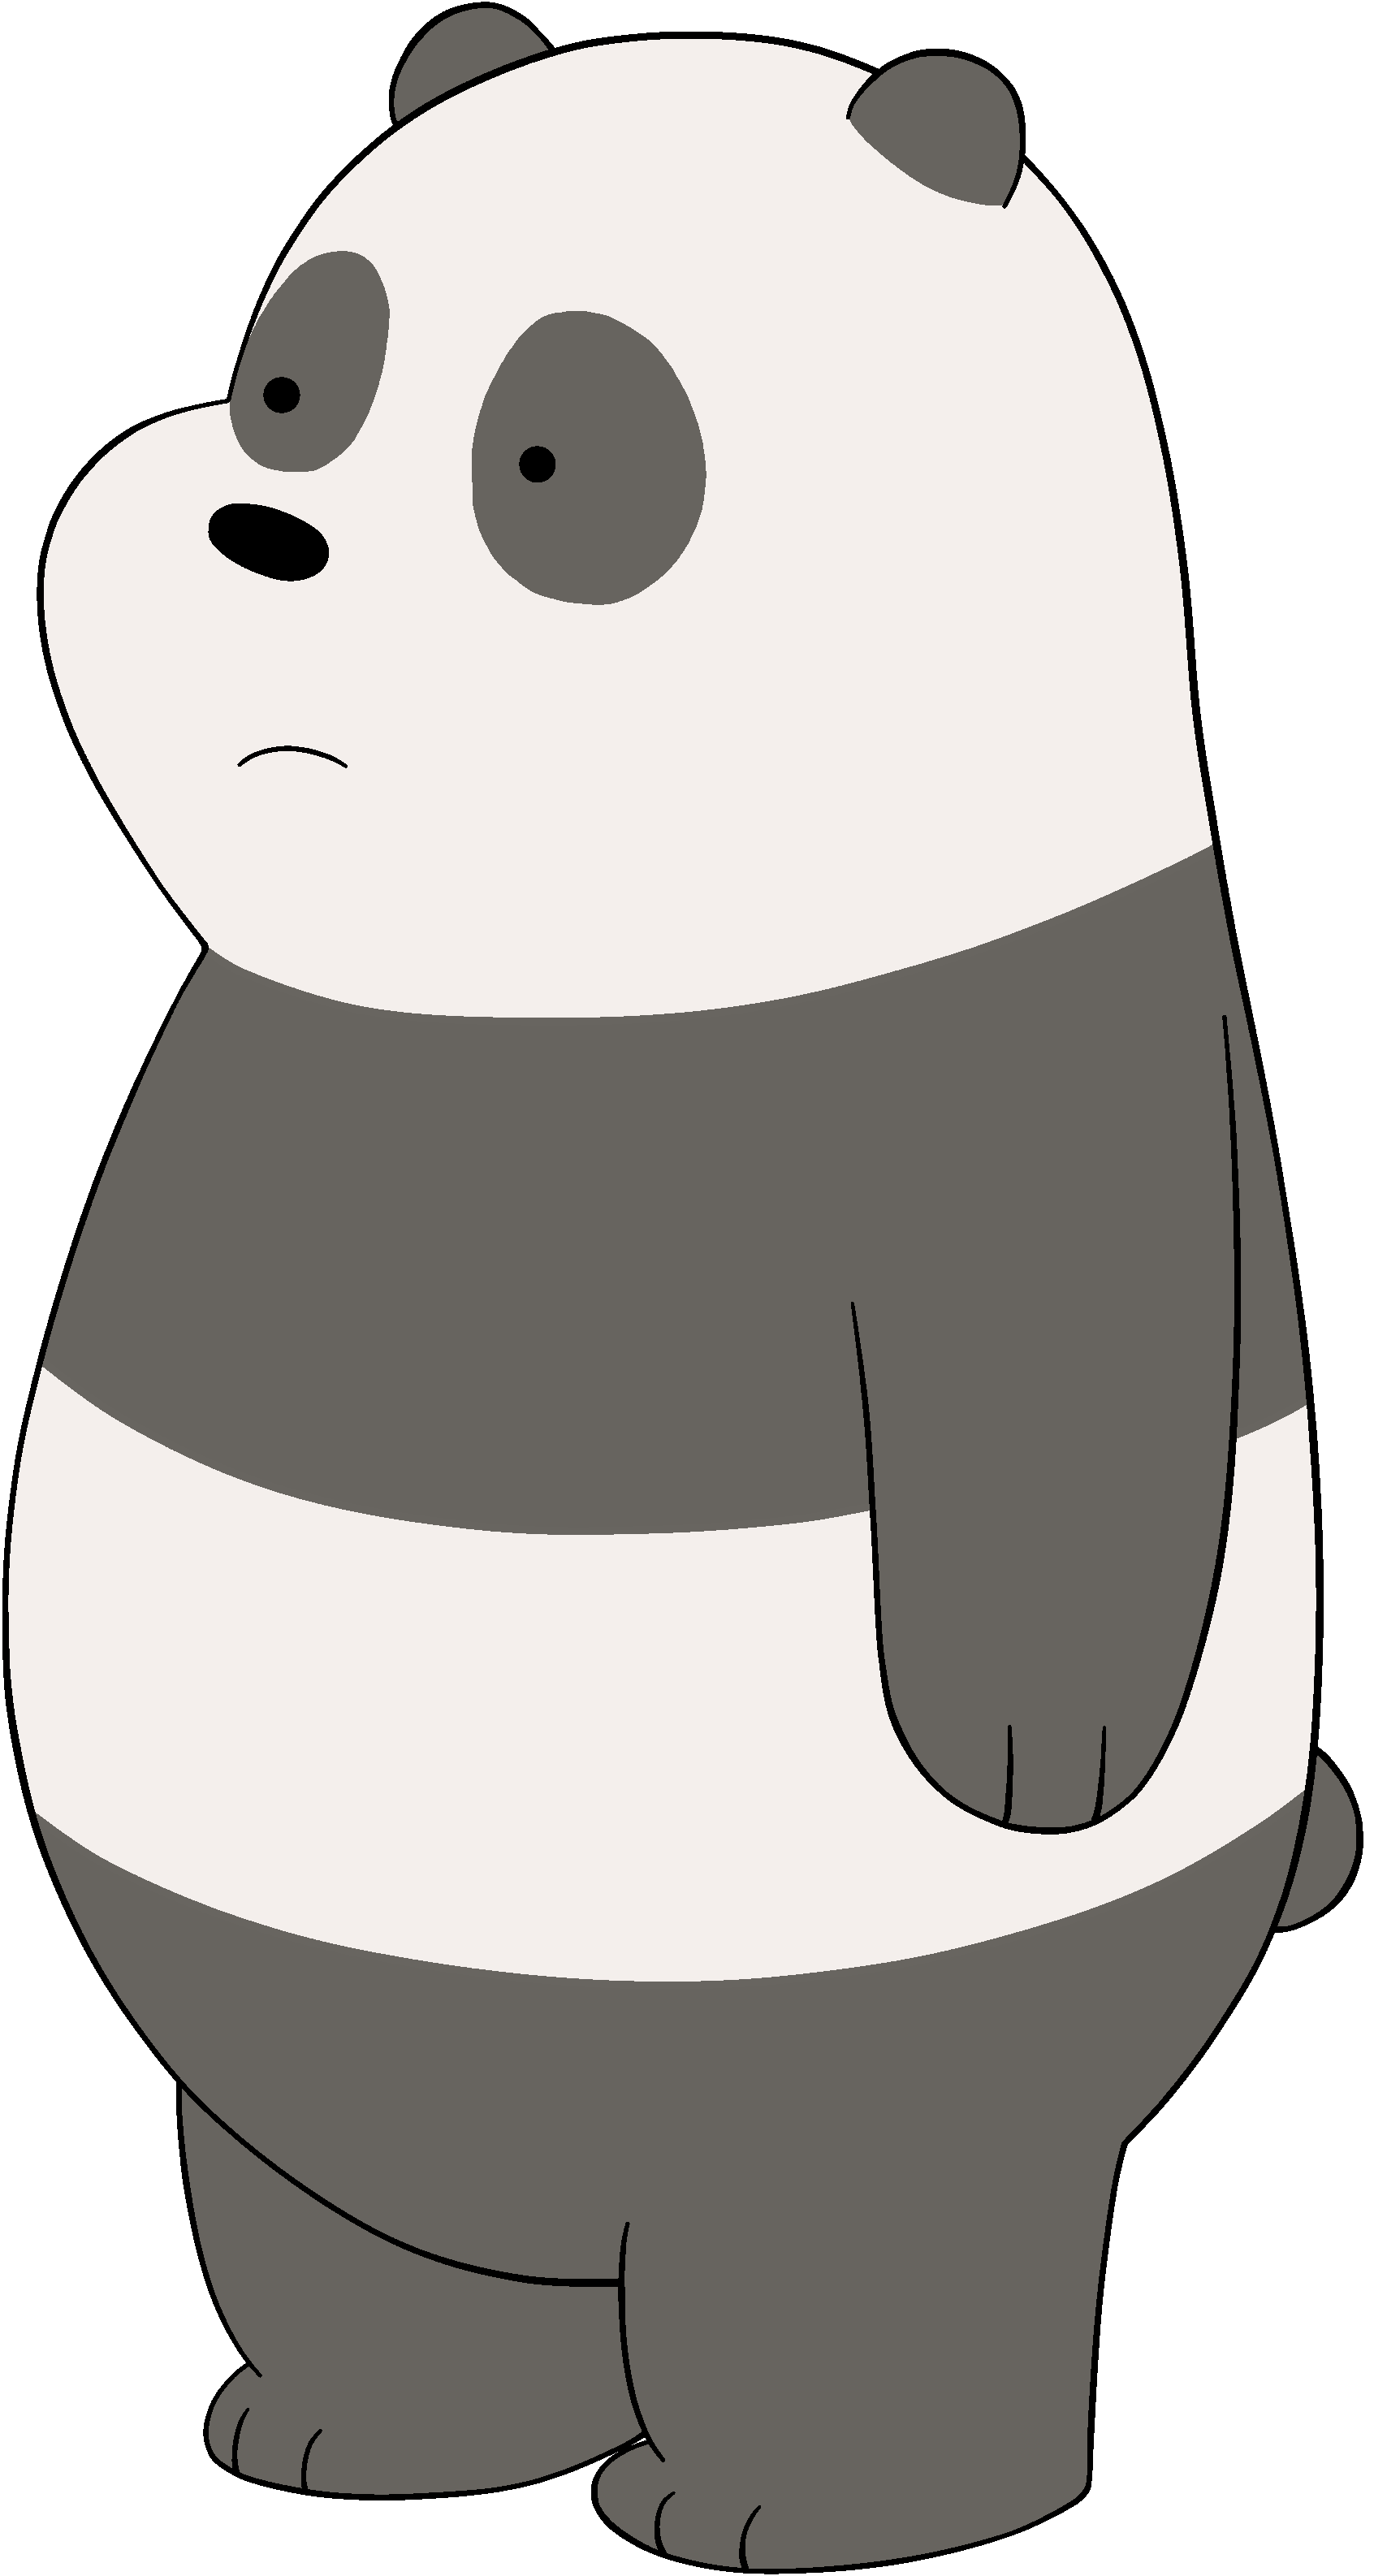 We Bare Bears images We Bare Bearsu0027 Panda HD wallpaper and background photos - Panda HD PNG